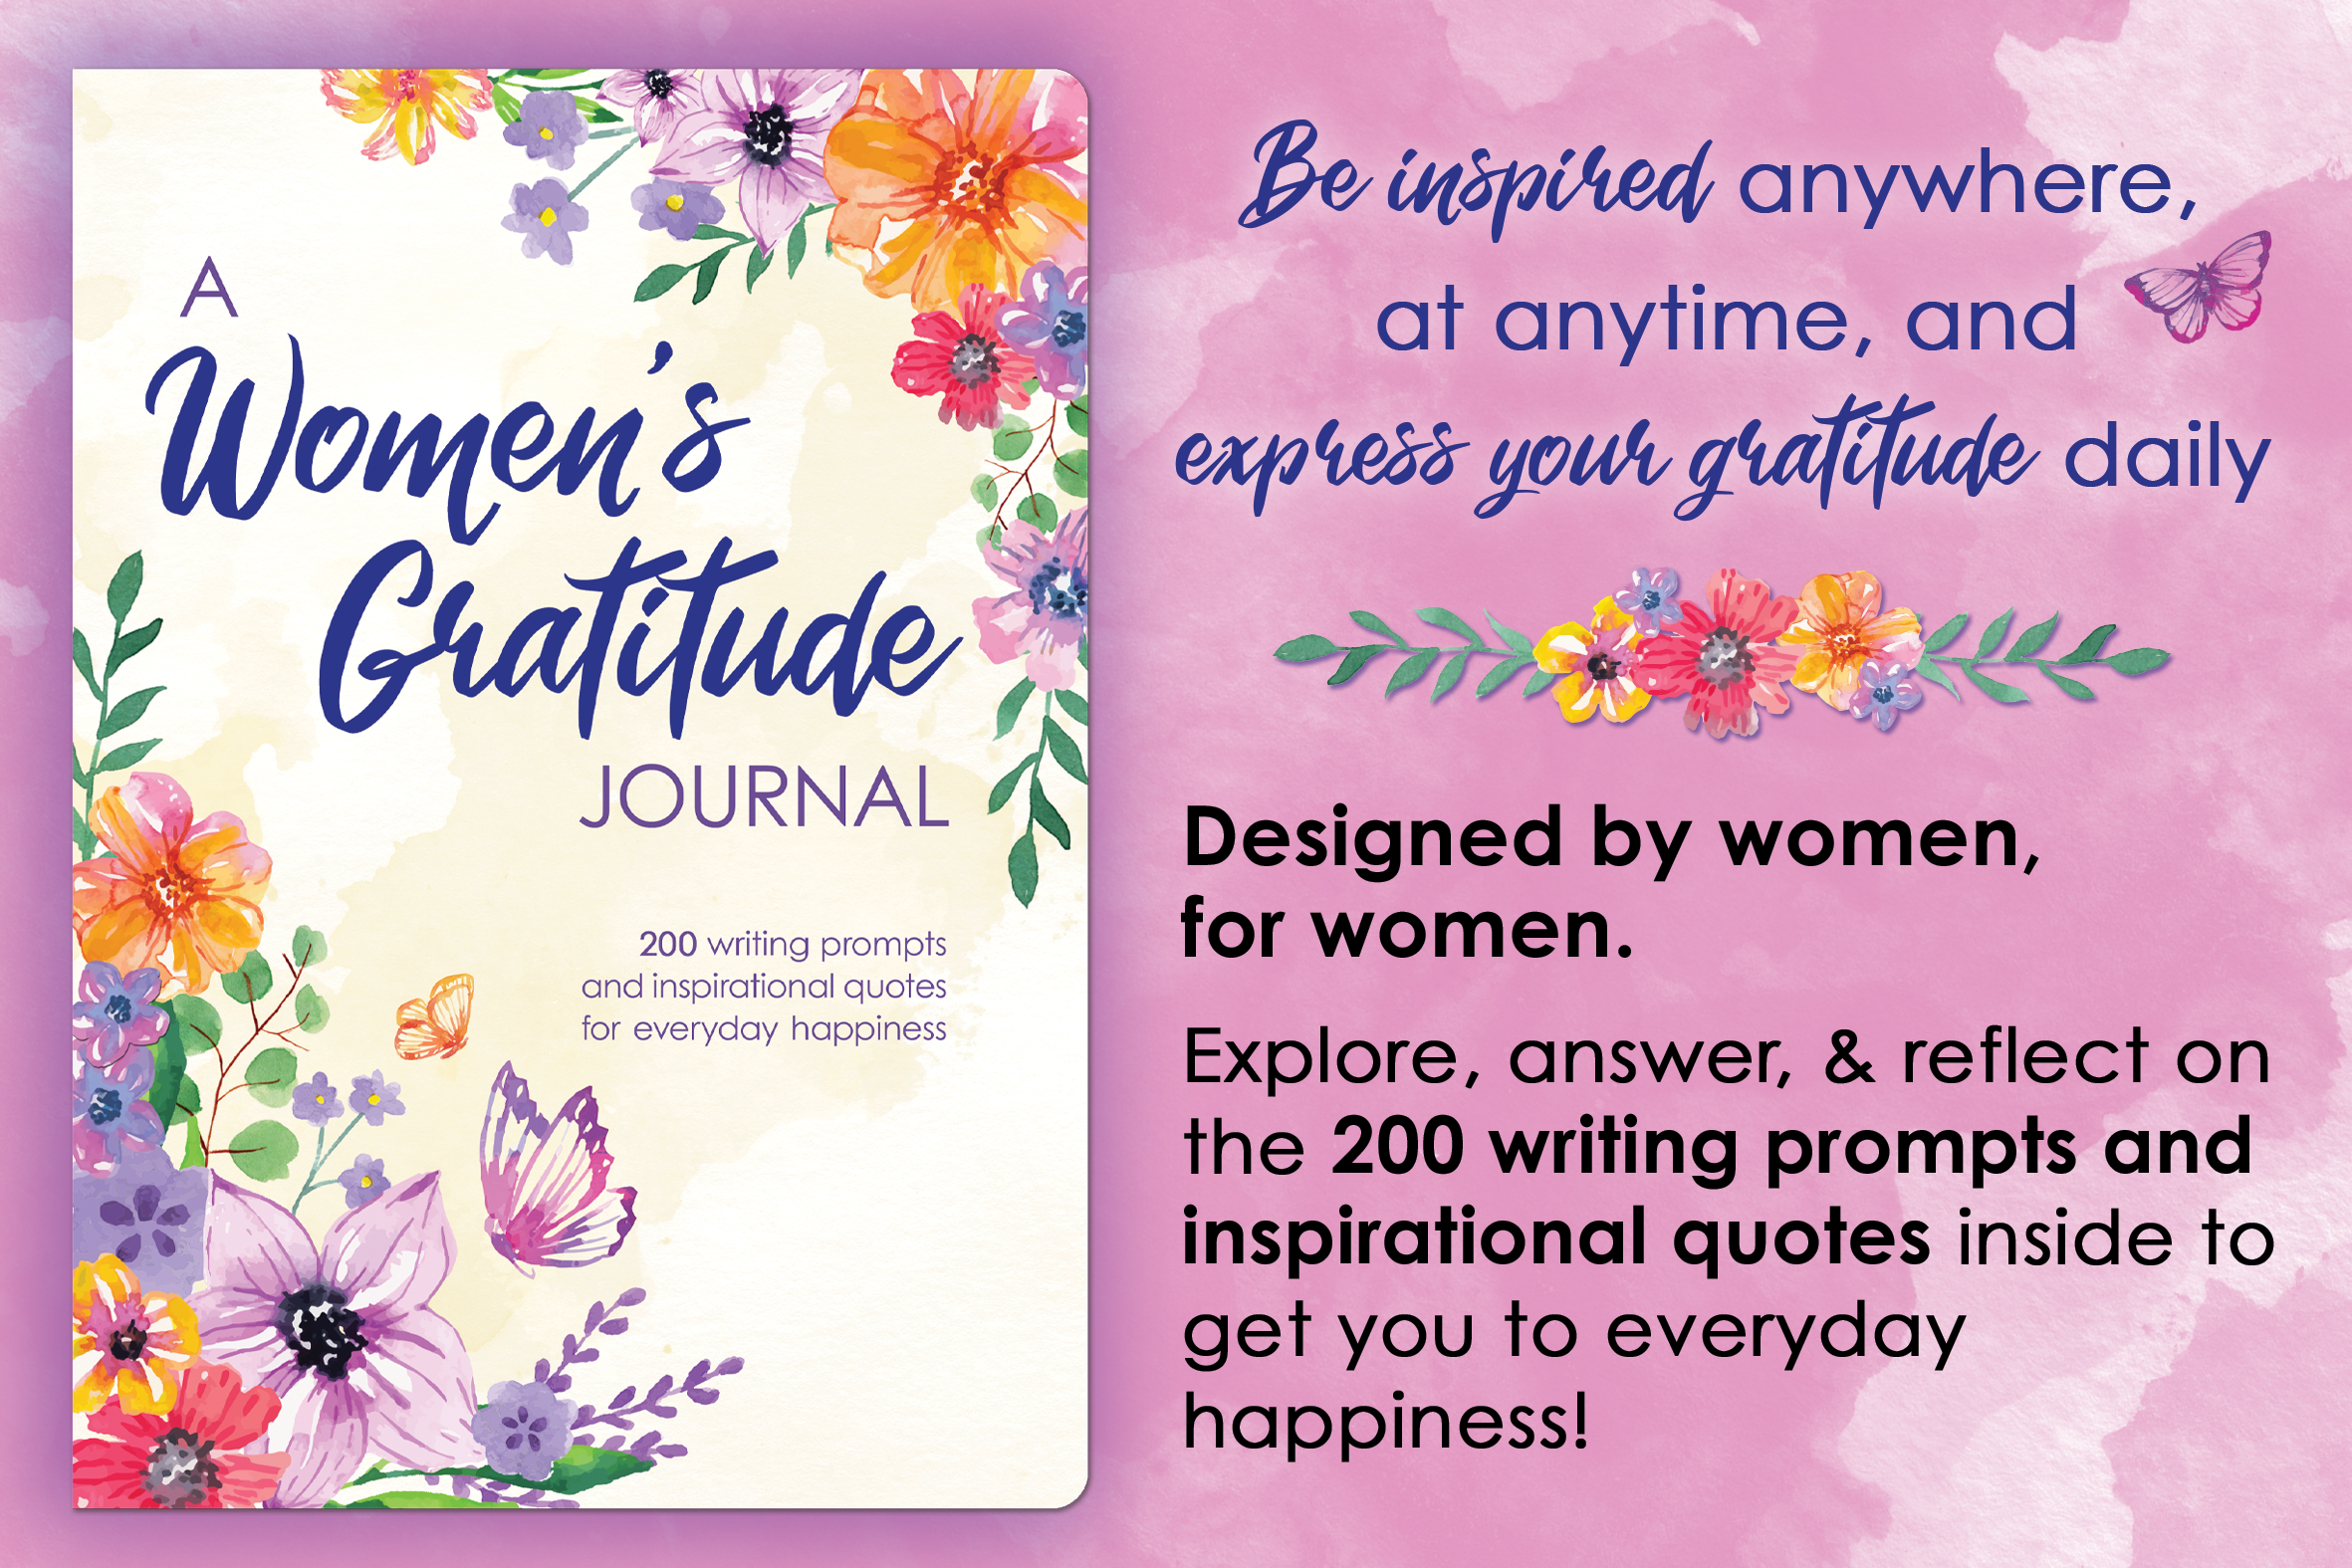 A Women's Gratitude Journal Main Graphic